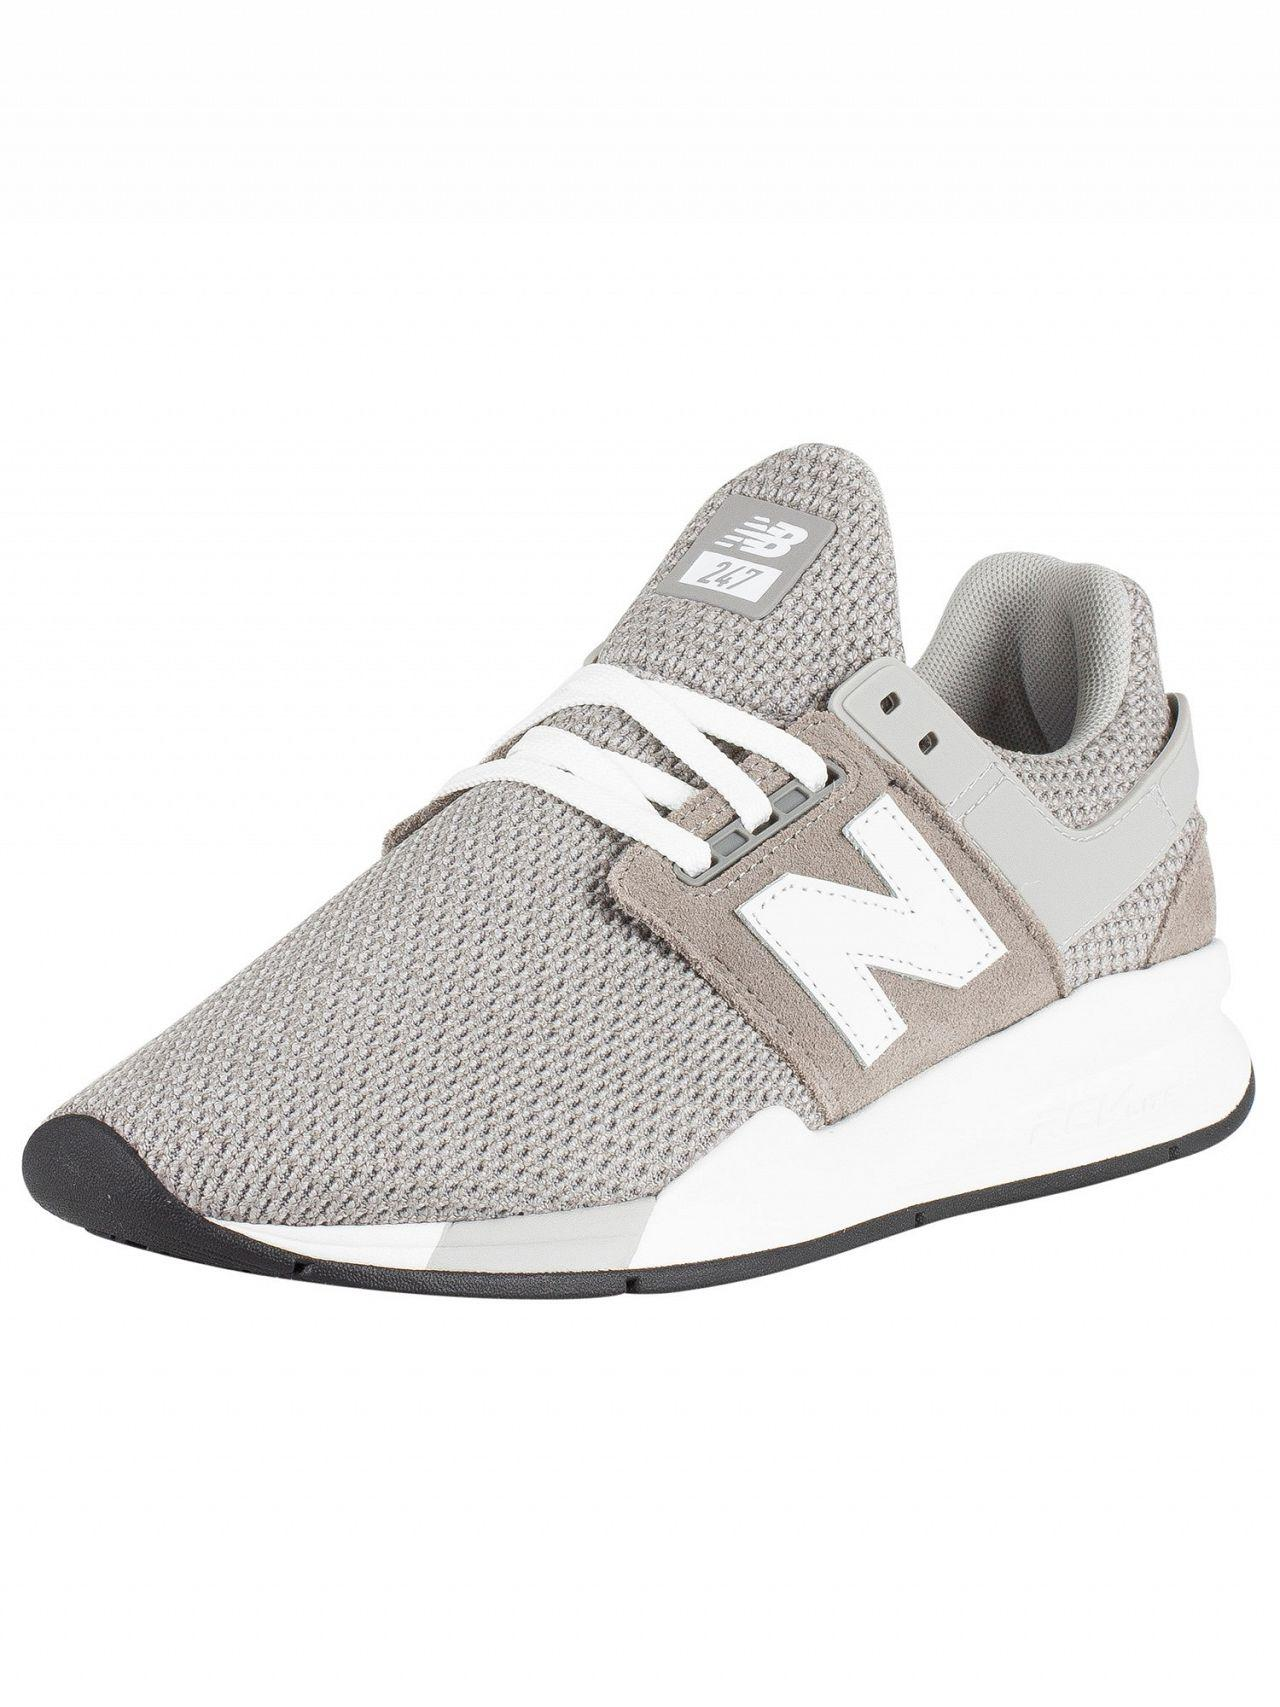 666f2c450c4dd Lyst - New Balance Grey/white 247 Textured Trainers in Gray for Men